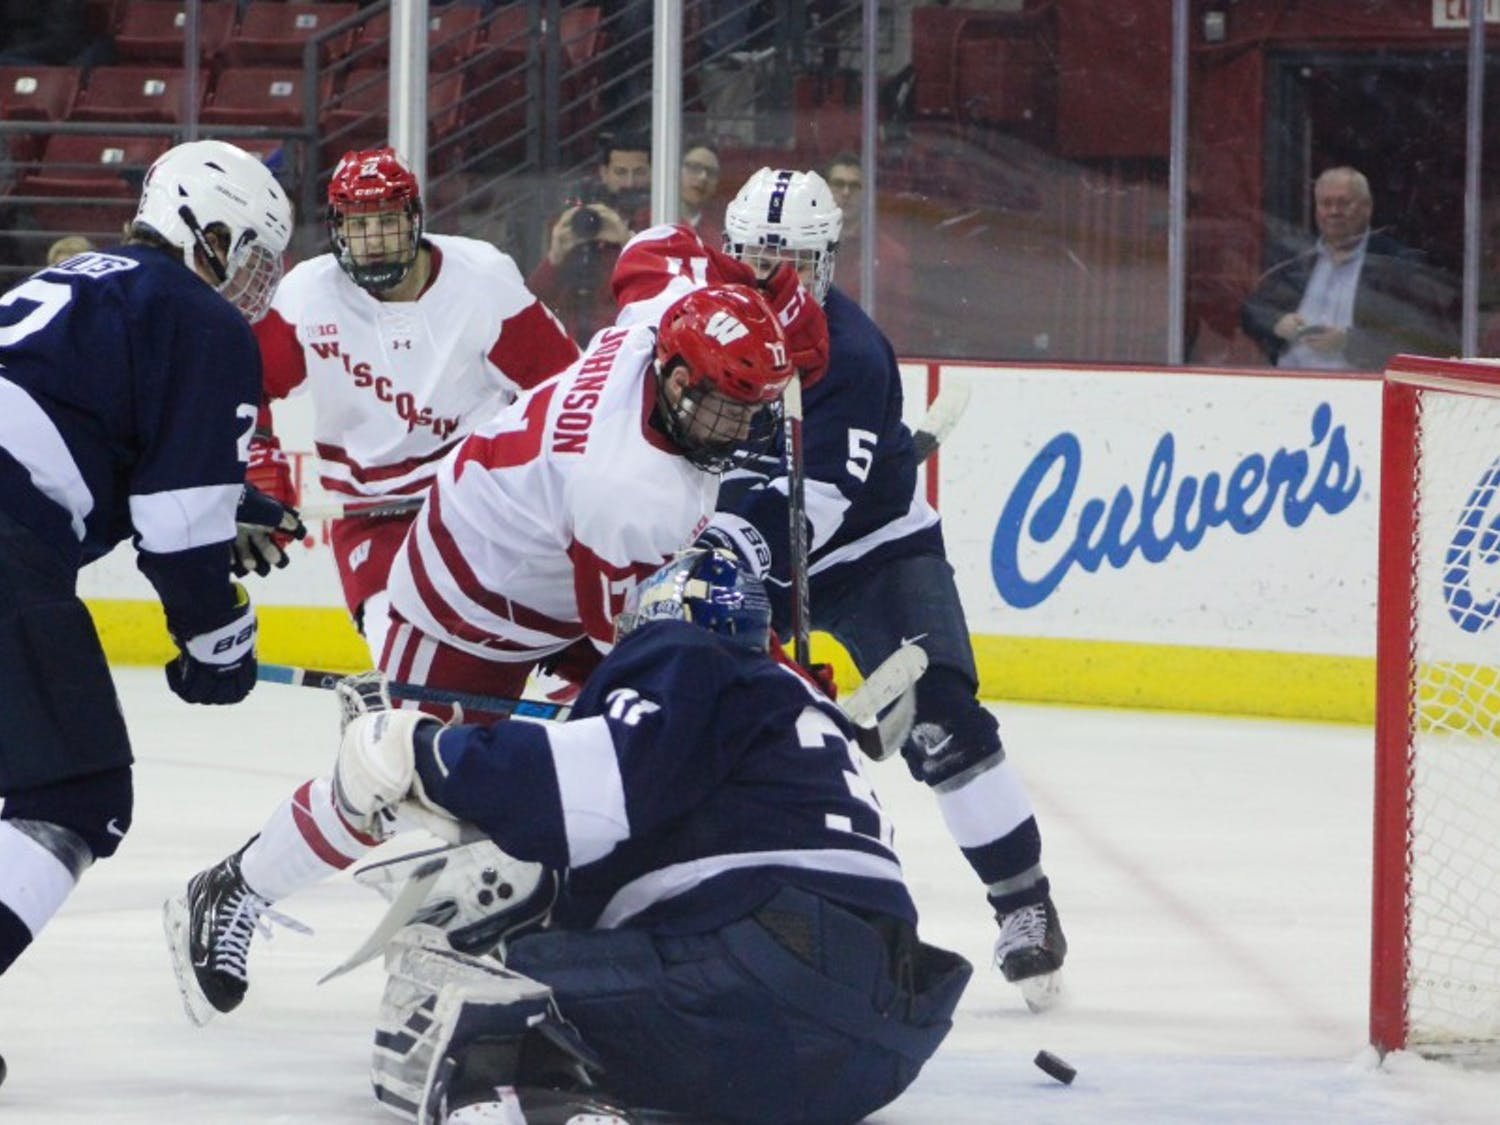 Senior forward Will Johnson scored a pair of goals and contributed valuable physical play to help the Badgers collect their first win in six games.